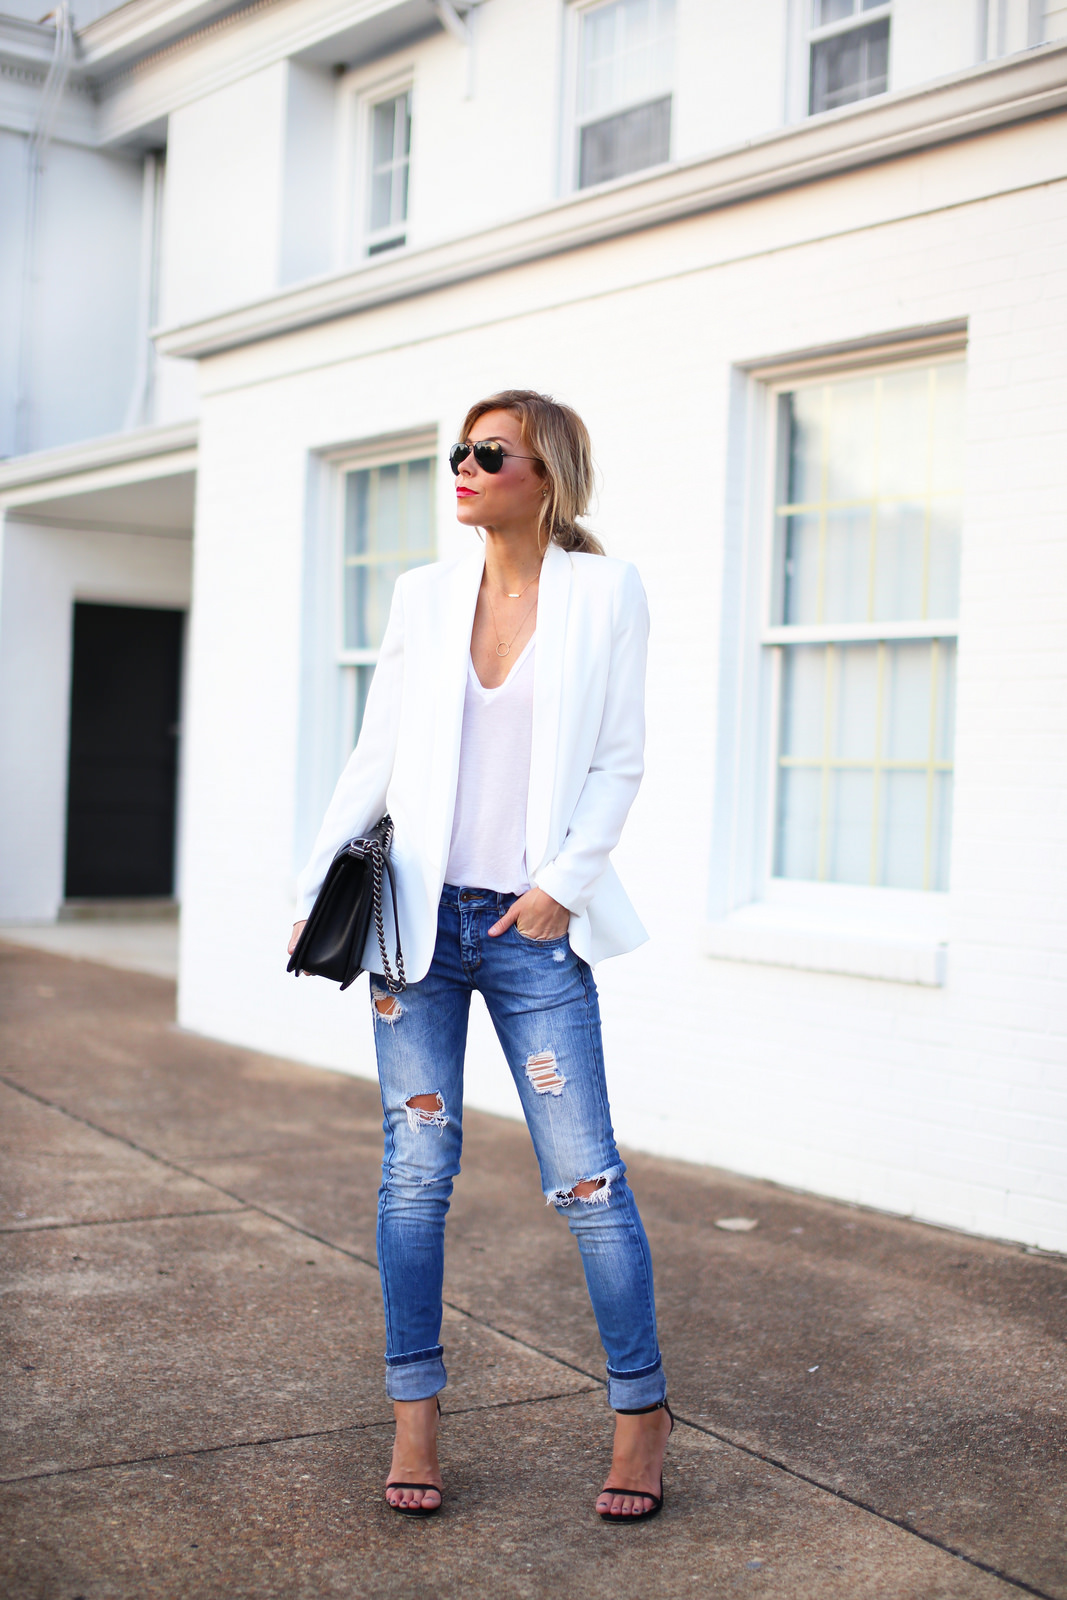 White blazer with black outlines is worn atop black-white striped top tucked in black skinny trousers completed with golden pointed-toe red pumps. White structured blazer looks refined and chic worn atop black top teamed with ripped washed blue boyfriend cuffed jeans and black pumps.